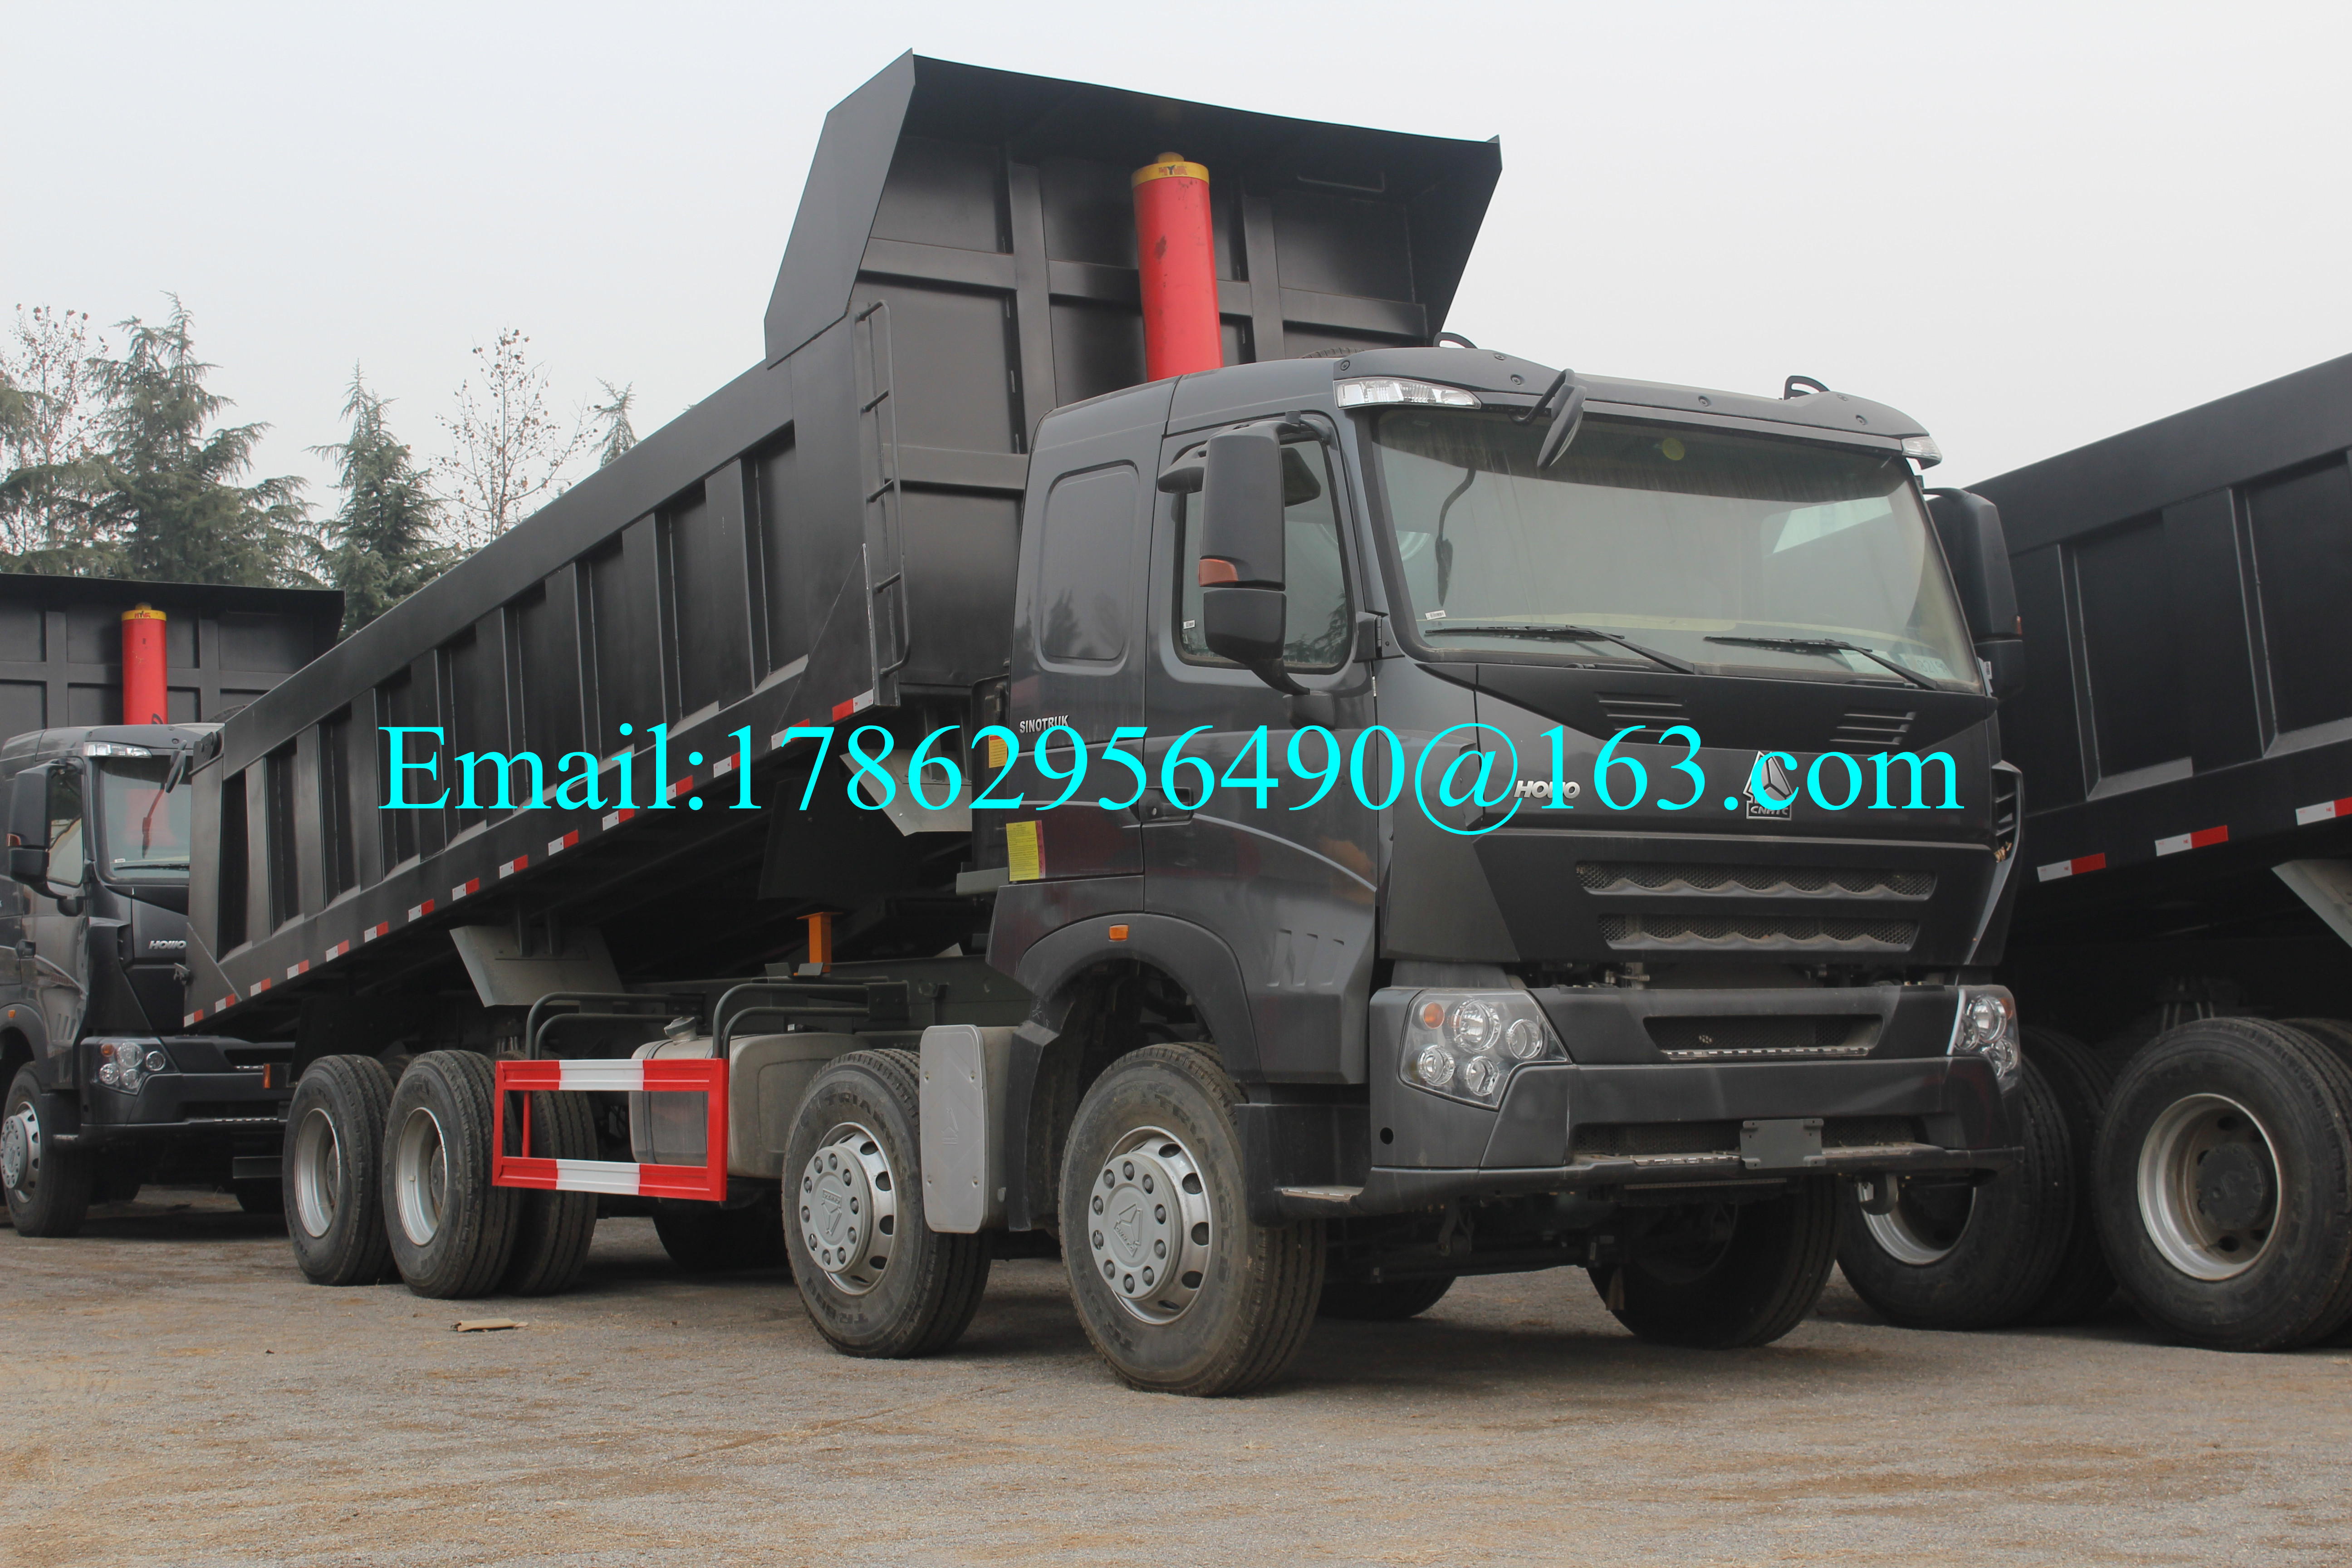 Black 371 HP 8x4 Heavy Duty Dump Truck With ZF8118 Steering Gear Box And HW76 Cab